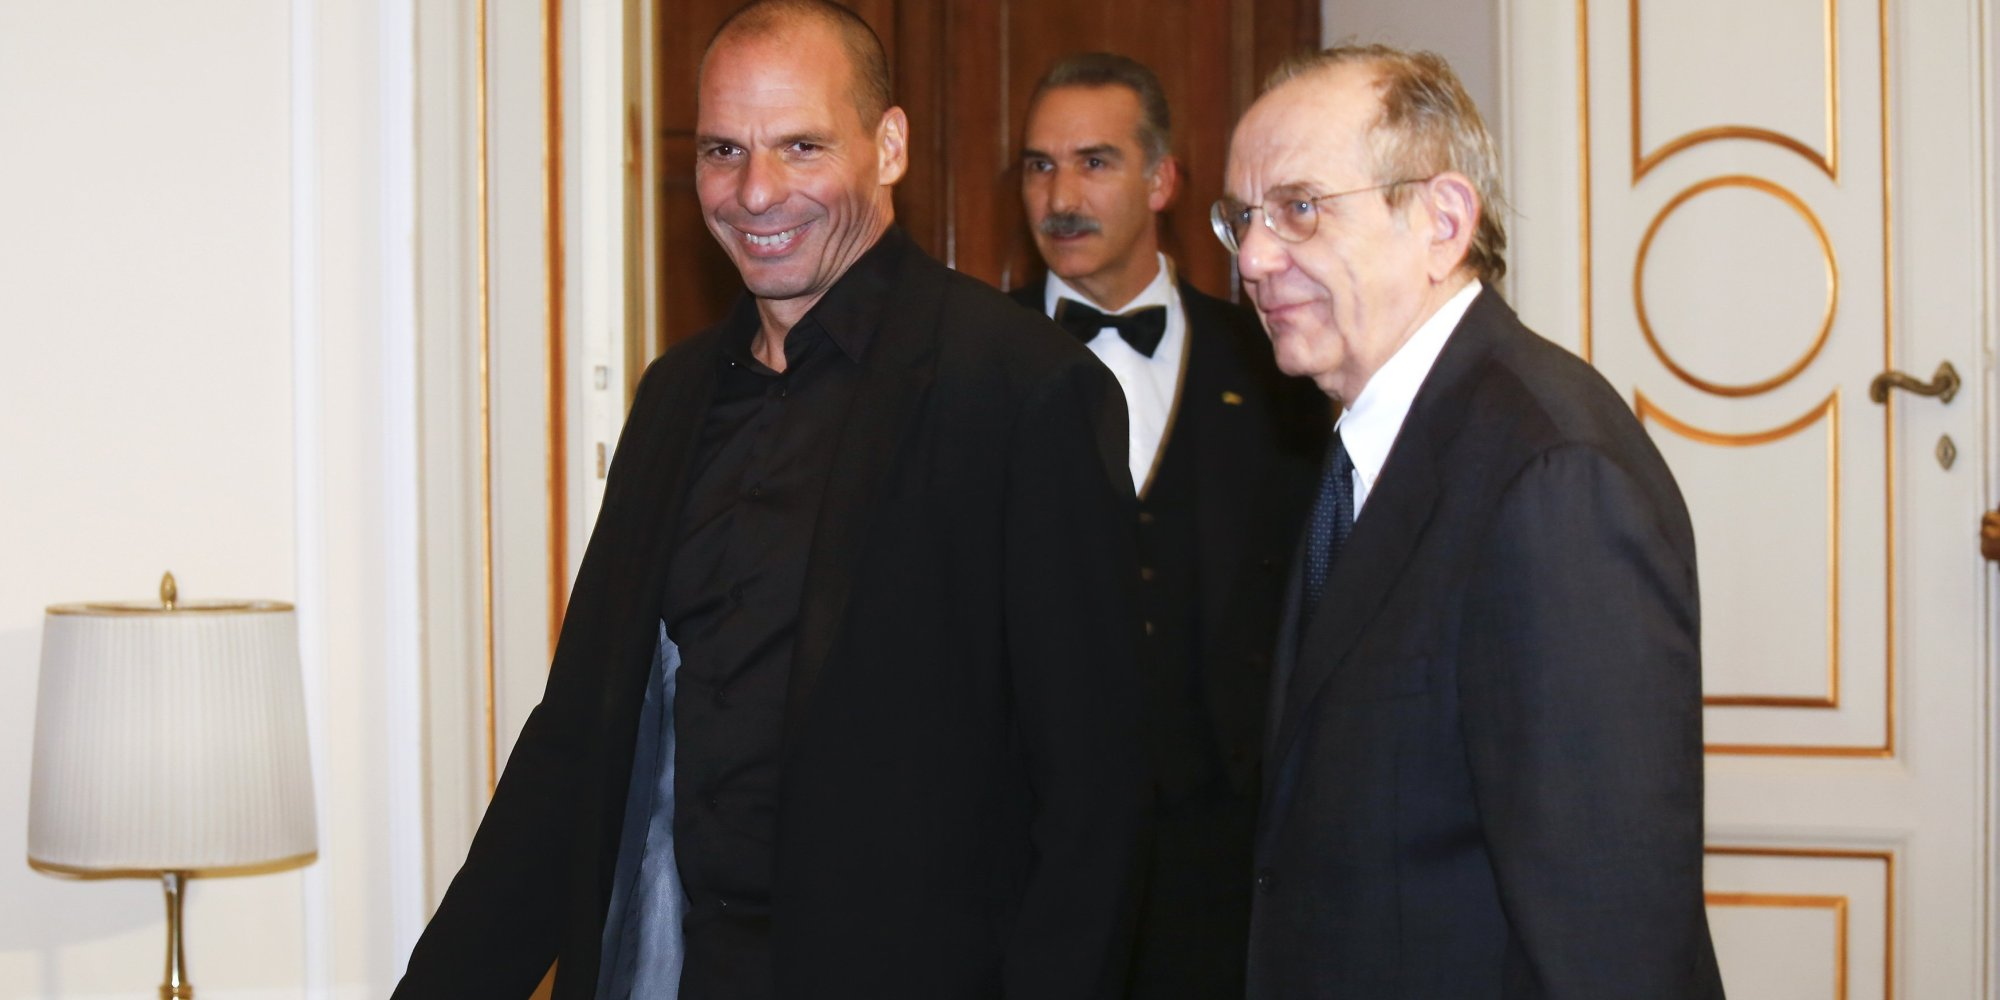 Greek Finance Minister Varoufakis walks next his Italian counterpart Pier Carlo Padoan during a meeting in Rome